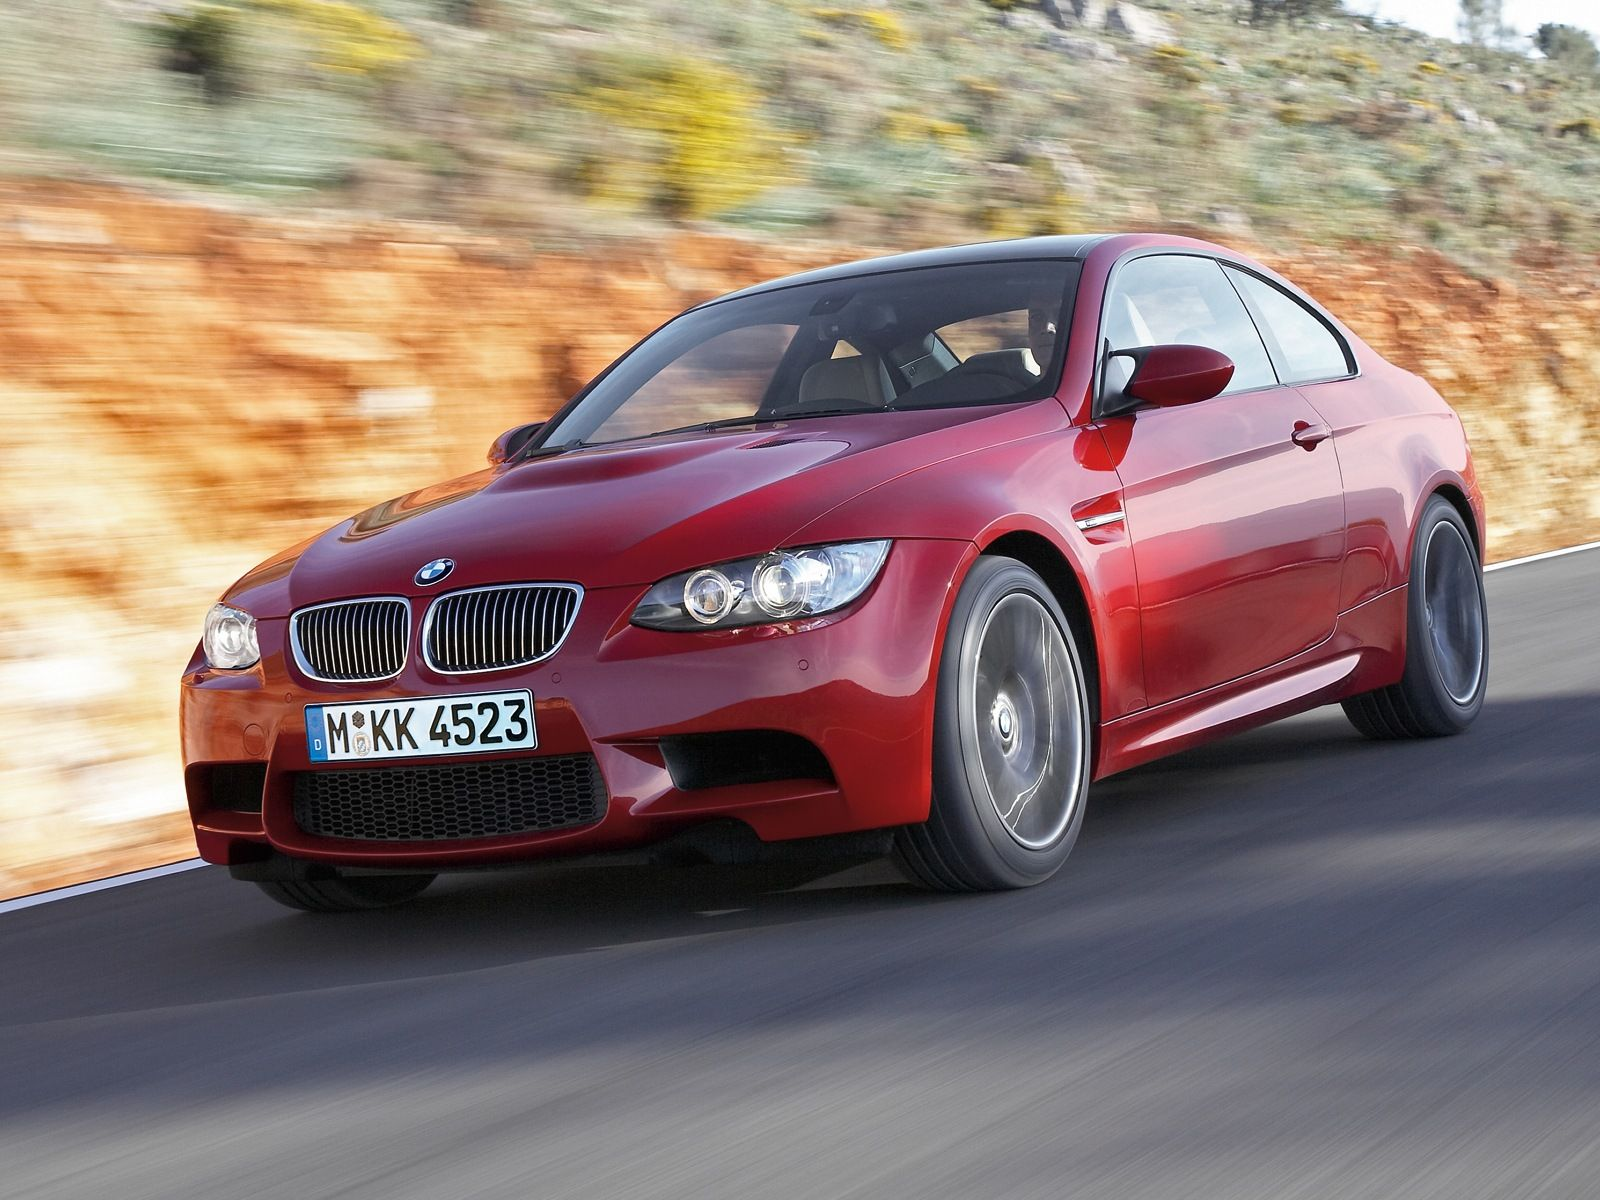 Bmw m3 coupe wallpapers in hd http imashon com w